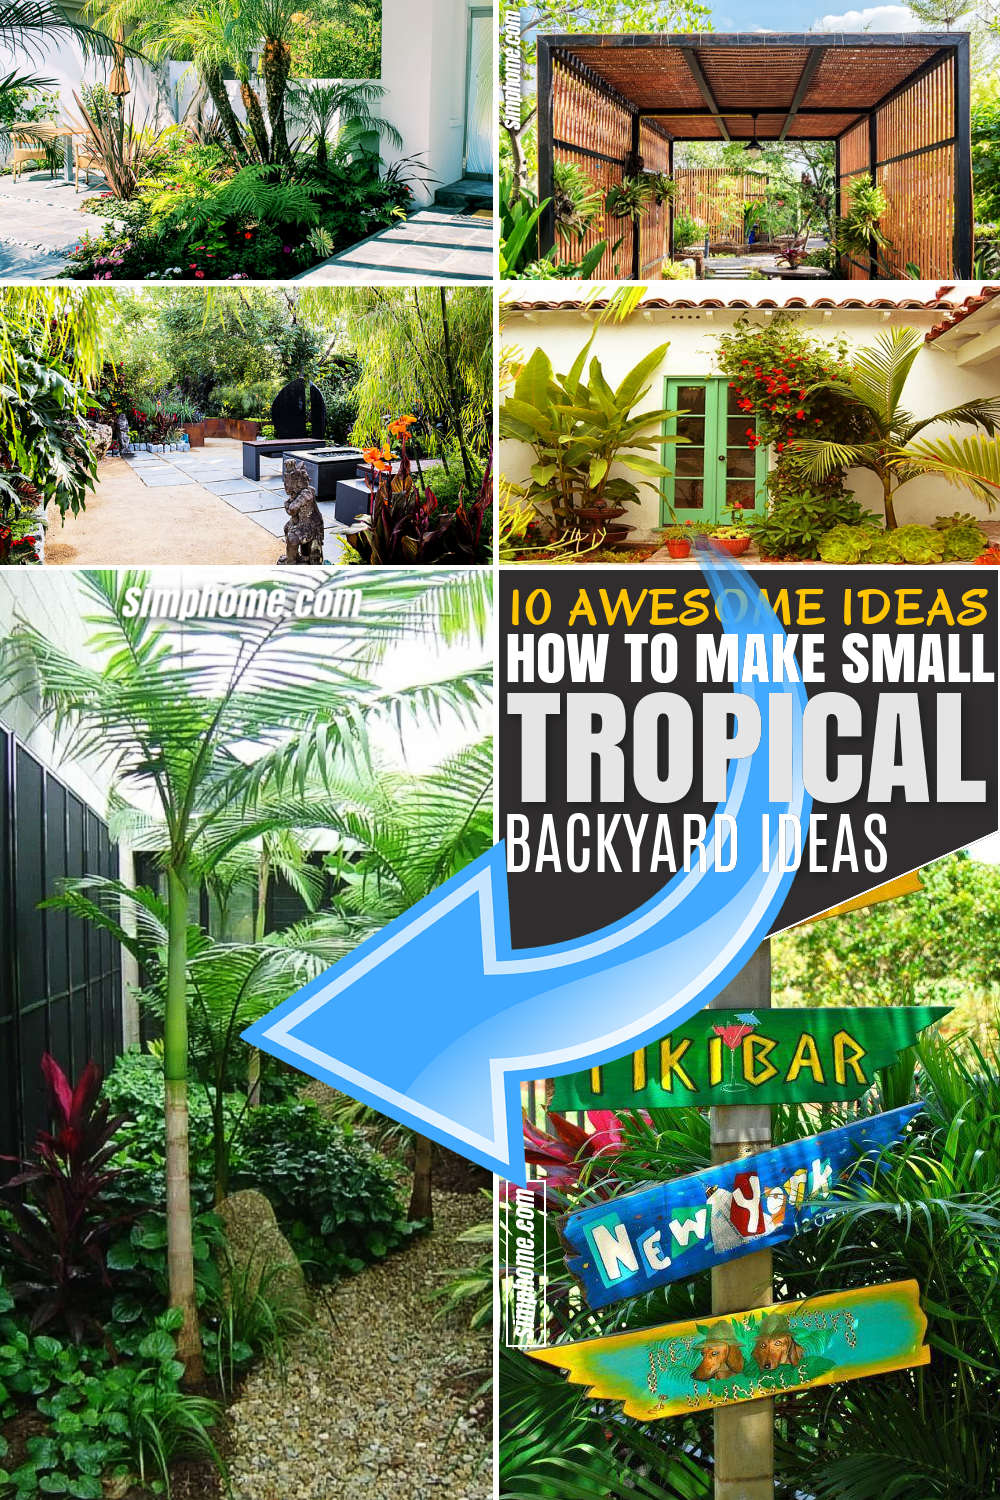 SIMPHOME.COM 10 Awesome Ideas How to Make Small Tropical Backyard Ideas Featured Pinterest